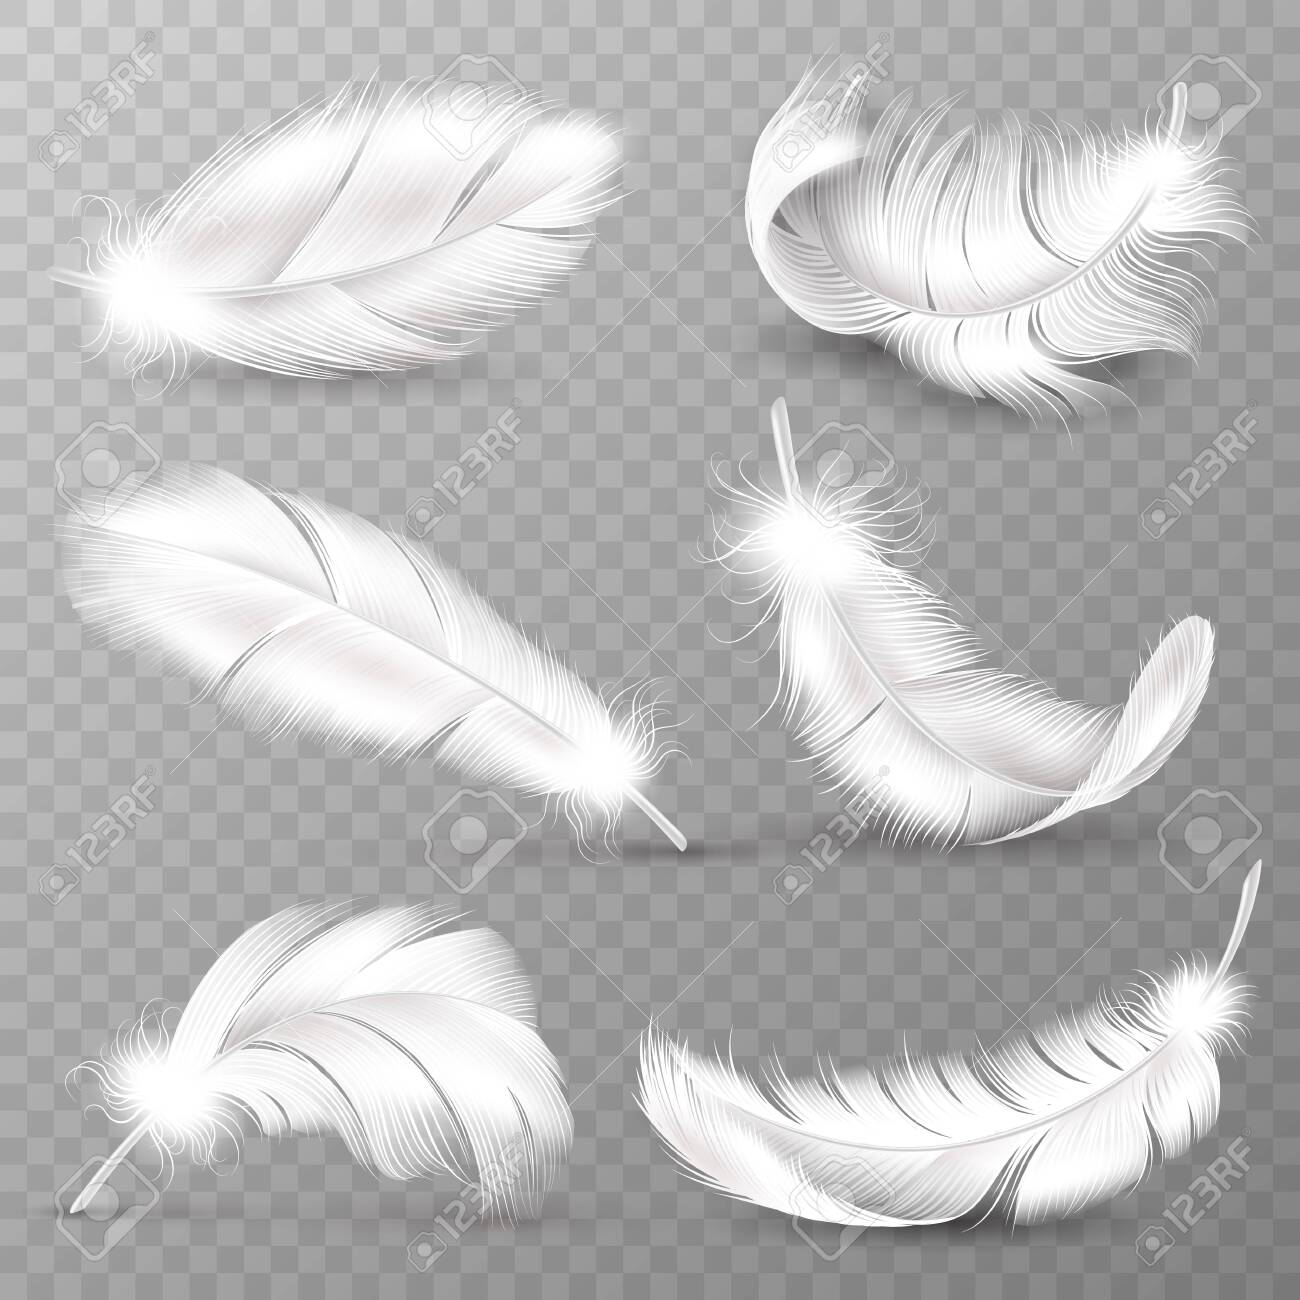 Realistic white feathers. Birds plumage, falling fluffy twirled feather, flying angel wings feathers. Realistic isolated vector easy transparent goose animal plume logo set - 130071686